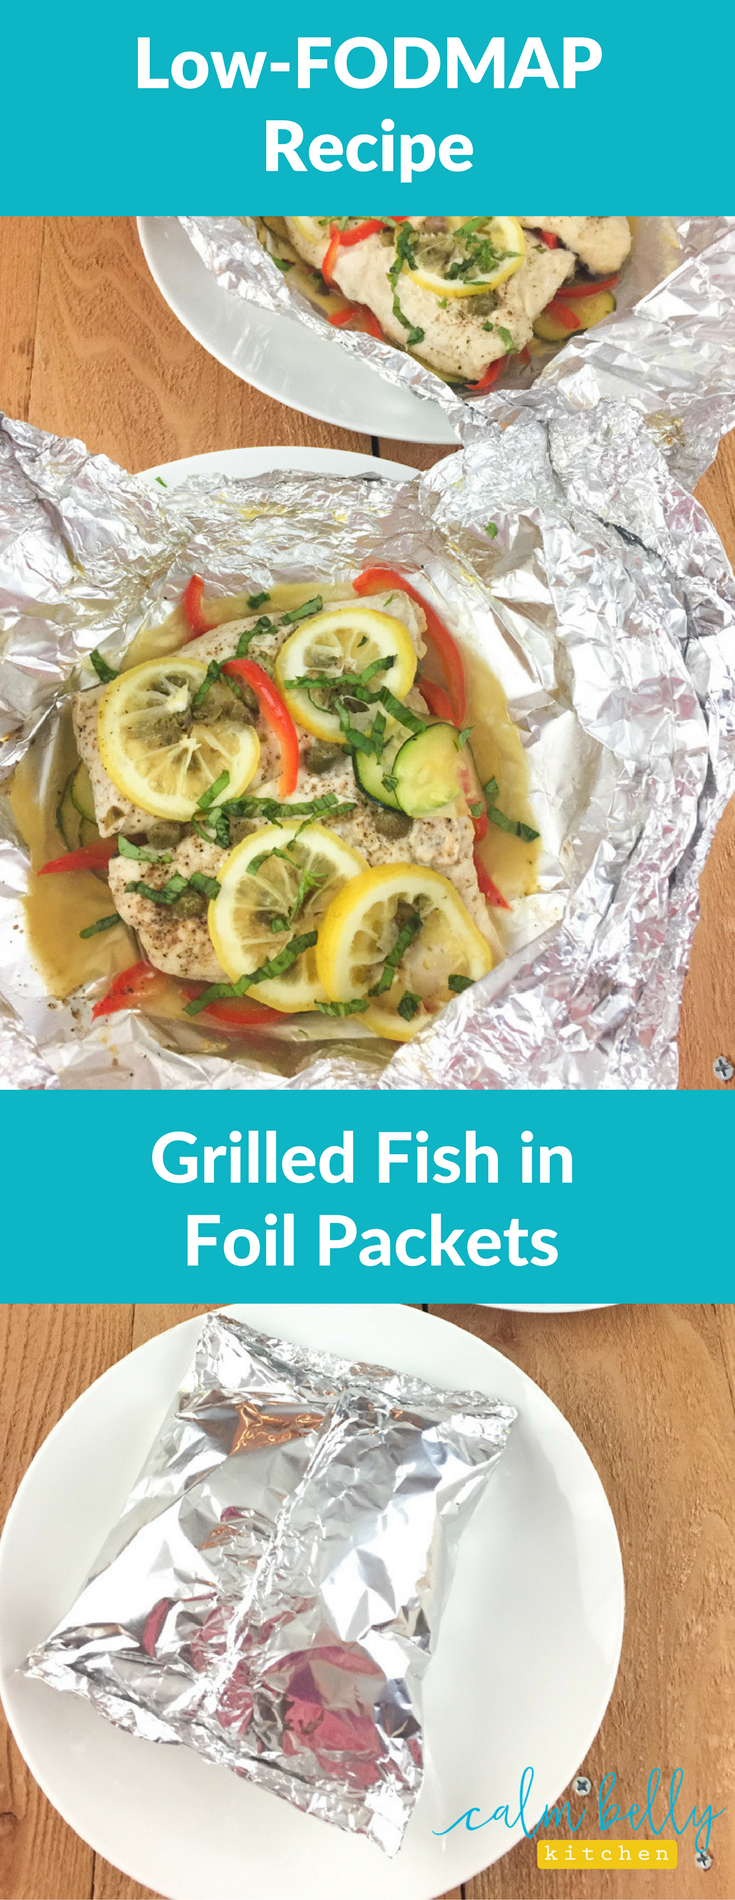 This simple foil packet method is the easiest way to cook delicate fish and veggies on the grill. This low FODMAP recipe is healthy, fast and a great choice when you're eating for IBS.